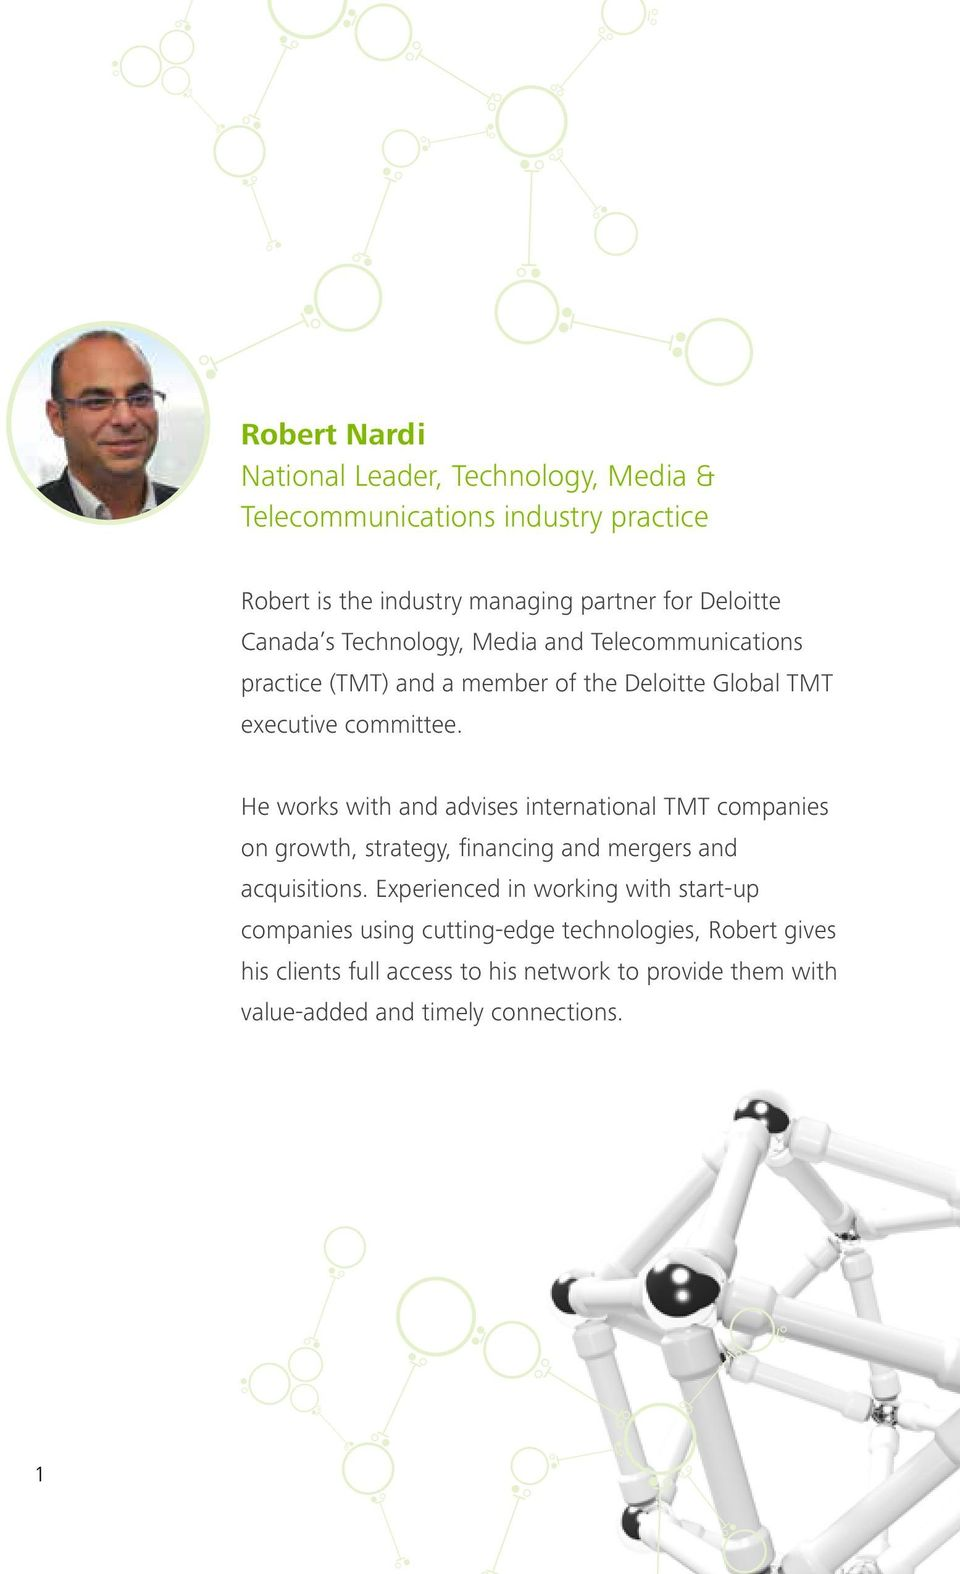 He works with and advises international TMT companies on growth, strategy, financing and mergers and acquisitions.